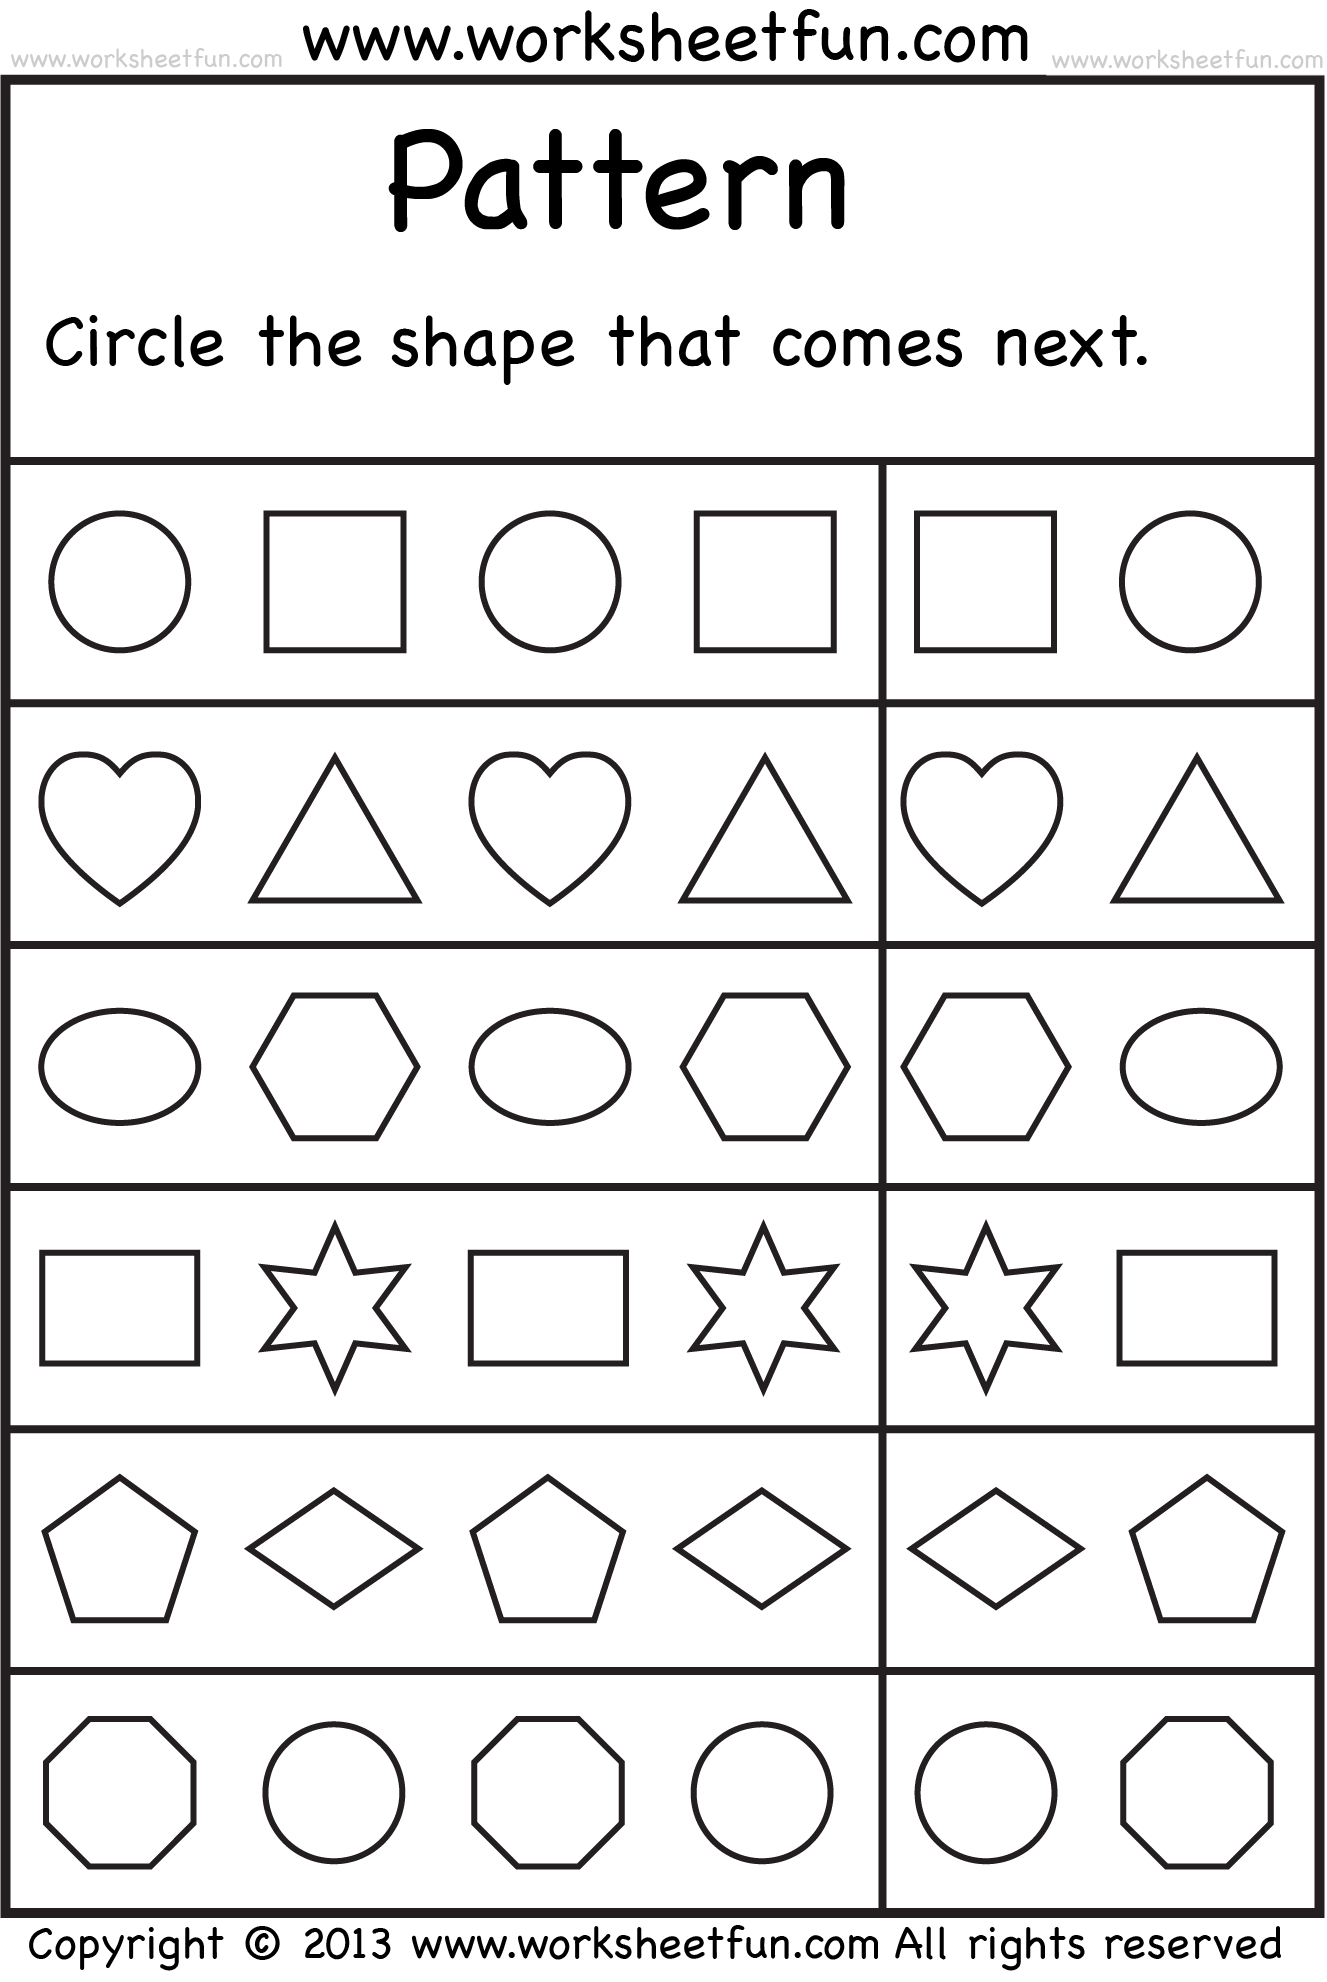 Proatmealus  Unique  Images About School Worksheets On Pinterest  Number Words  With Handsome  Images About School Worksheets On Pinterest  Number Words Alphabet Worksheets And Free Printable Kindergarten Worksheets With Attractive Prefix And Suffix Worksheets Nd Grade Also  L Of The A Worksheet In Addition Ell Word Family Worksheets And Sets Of Numbers Worksheets As Well As Letter G Worksheets For Preschoolers Additionally Modern Biology Worksheet Answers From Pinterestcom With Proatmealus  Handsome  Images About School Worksheets On Pinterest  Number Words  With Attractive  Images About School Worksheets On Pinterest  Number Words Alphabet Worksheets And Free Printable Kindergarten Worksheets And Unique Prefix And Suffix Worksheets Nd Grade Also  L Of The A Worksheet In Addition Ell Word Family Worksheets From Pinterestcom